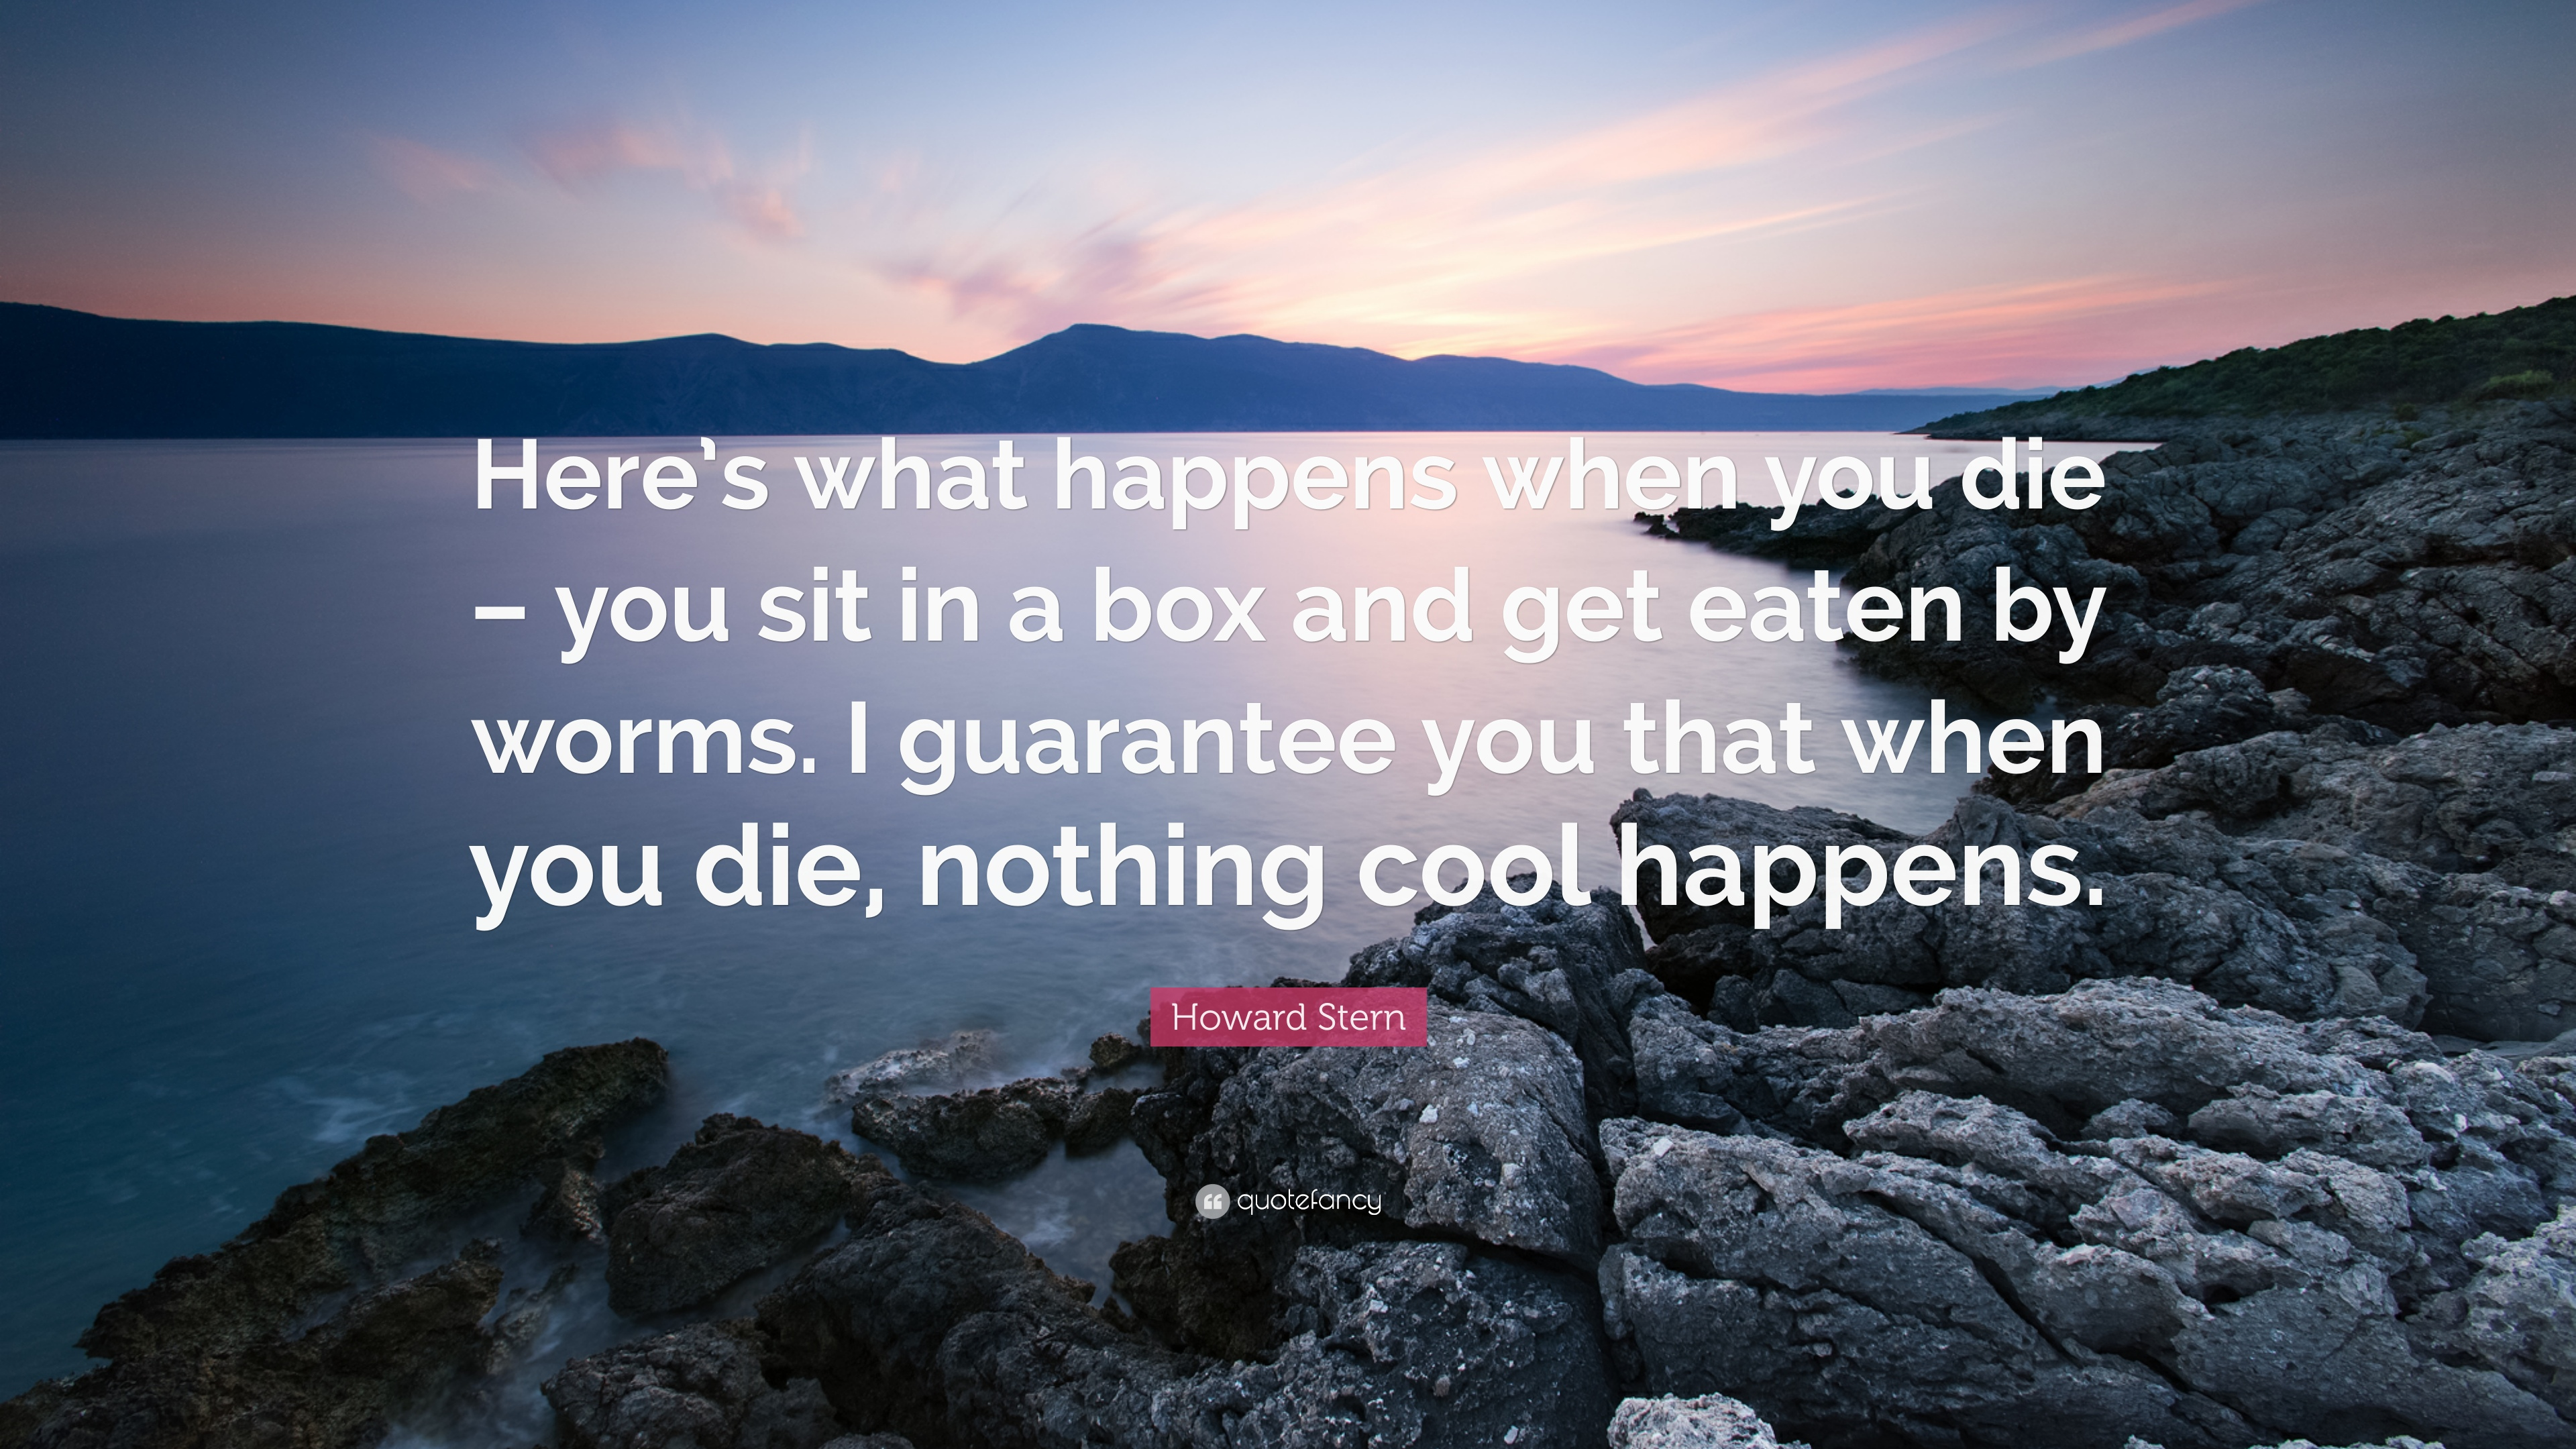 Howard Stern Quote Here S What Happens When You Die You Sit In A Box And Get Eaten By Worms I Guarantee You That When You Die Nothing C 10 Wallpapers Quotefancy